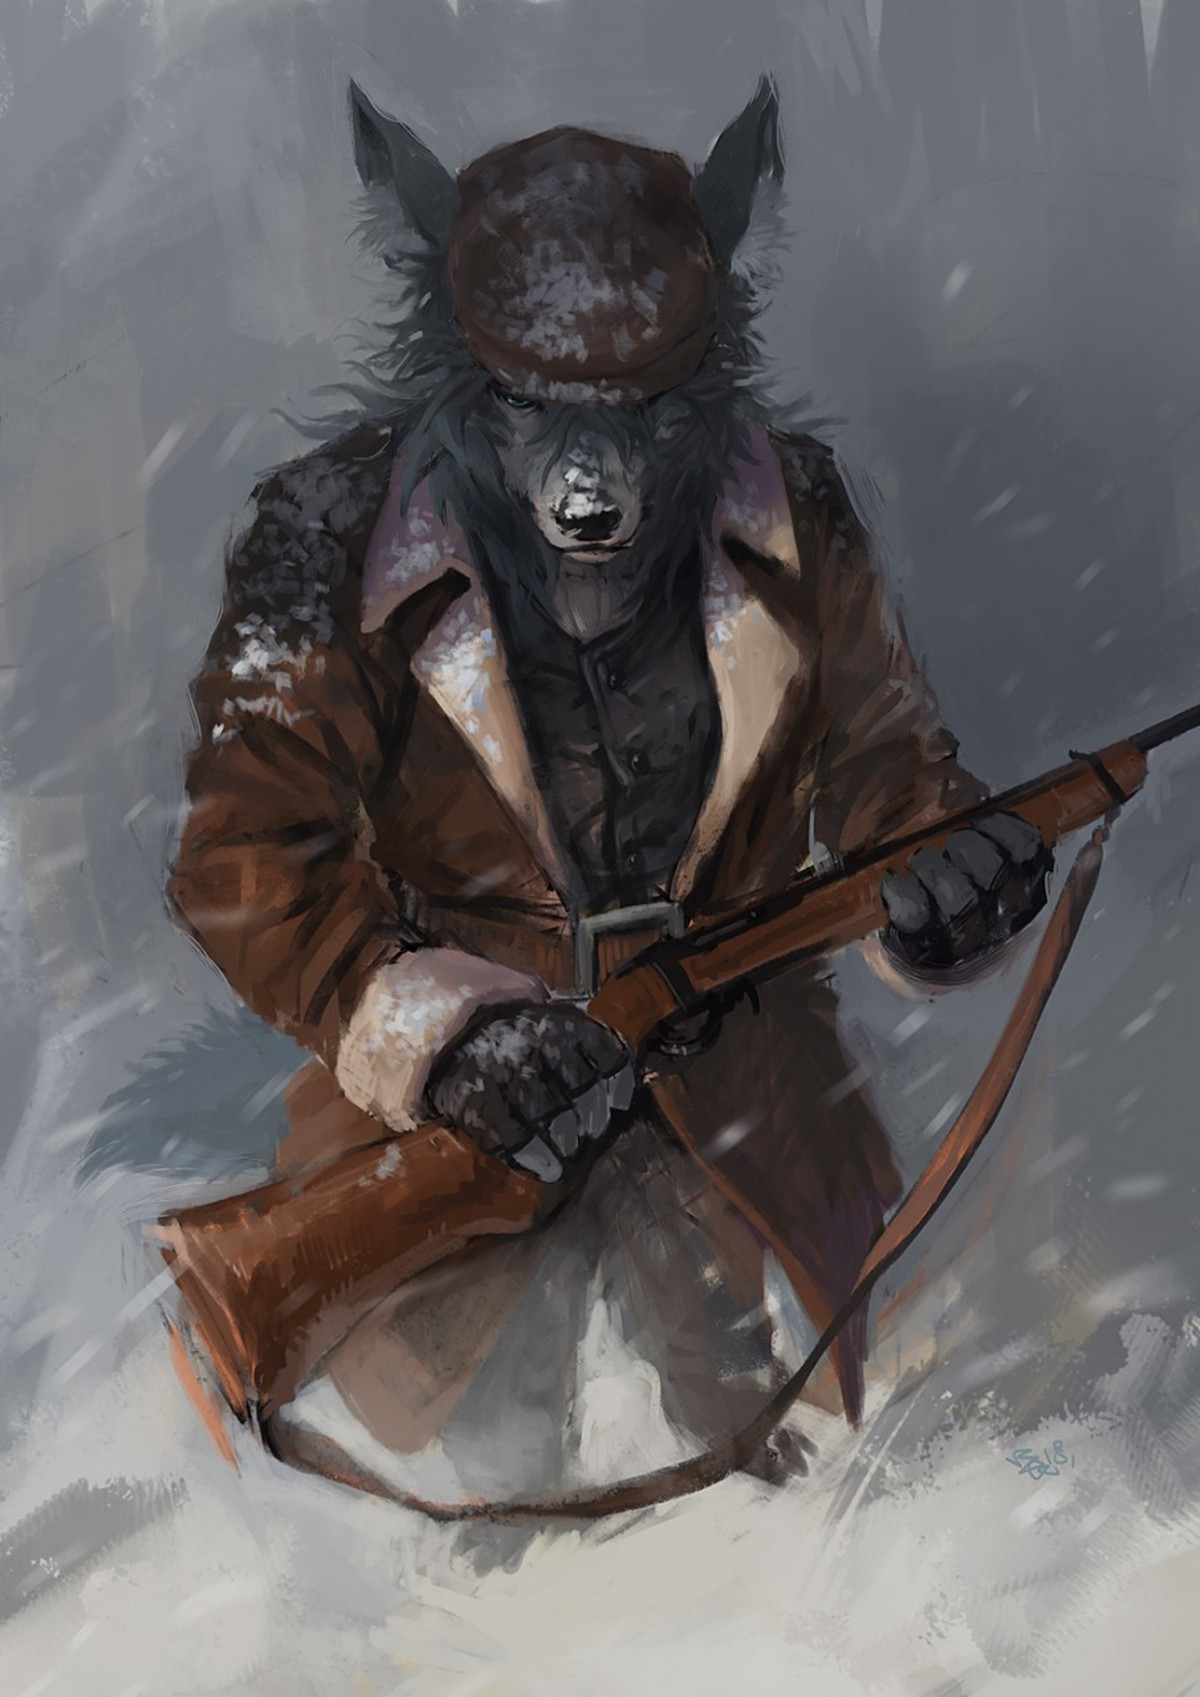 Racoonwolf . Edition 149 of Furry Art You Could Show Your Friends. Today's featured artist is Racoonwolf, a Taiwanese artist with a somewhat neo-i